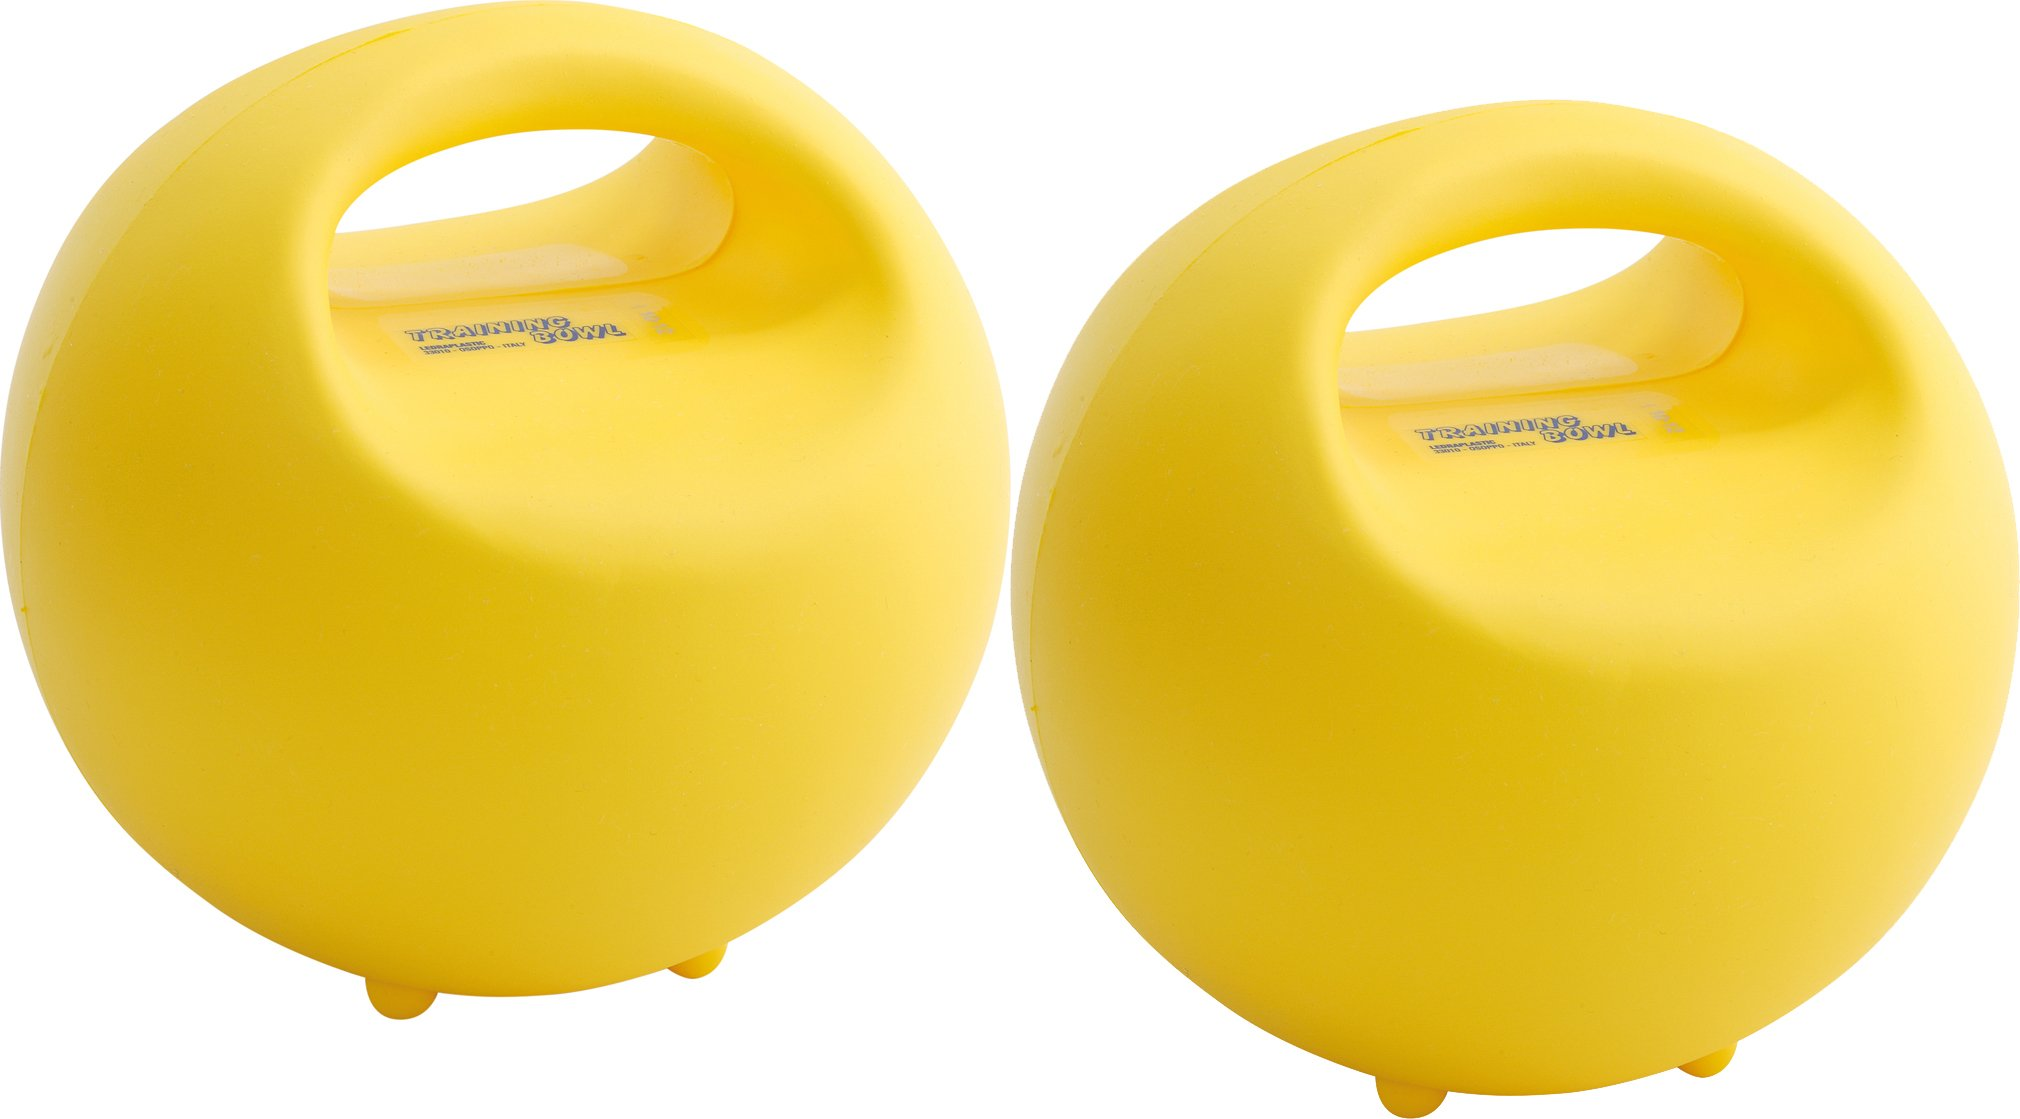 Gymnic Training Bowls, Adjustable Weight with Water/Sand, 2 Count